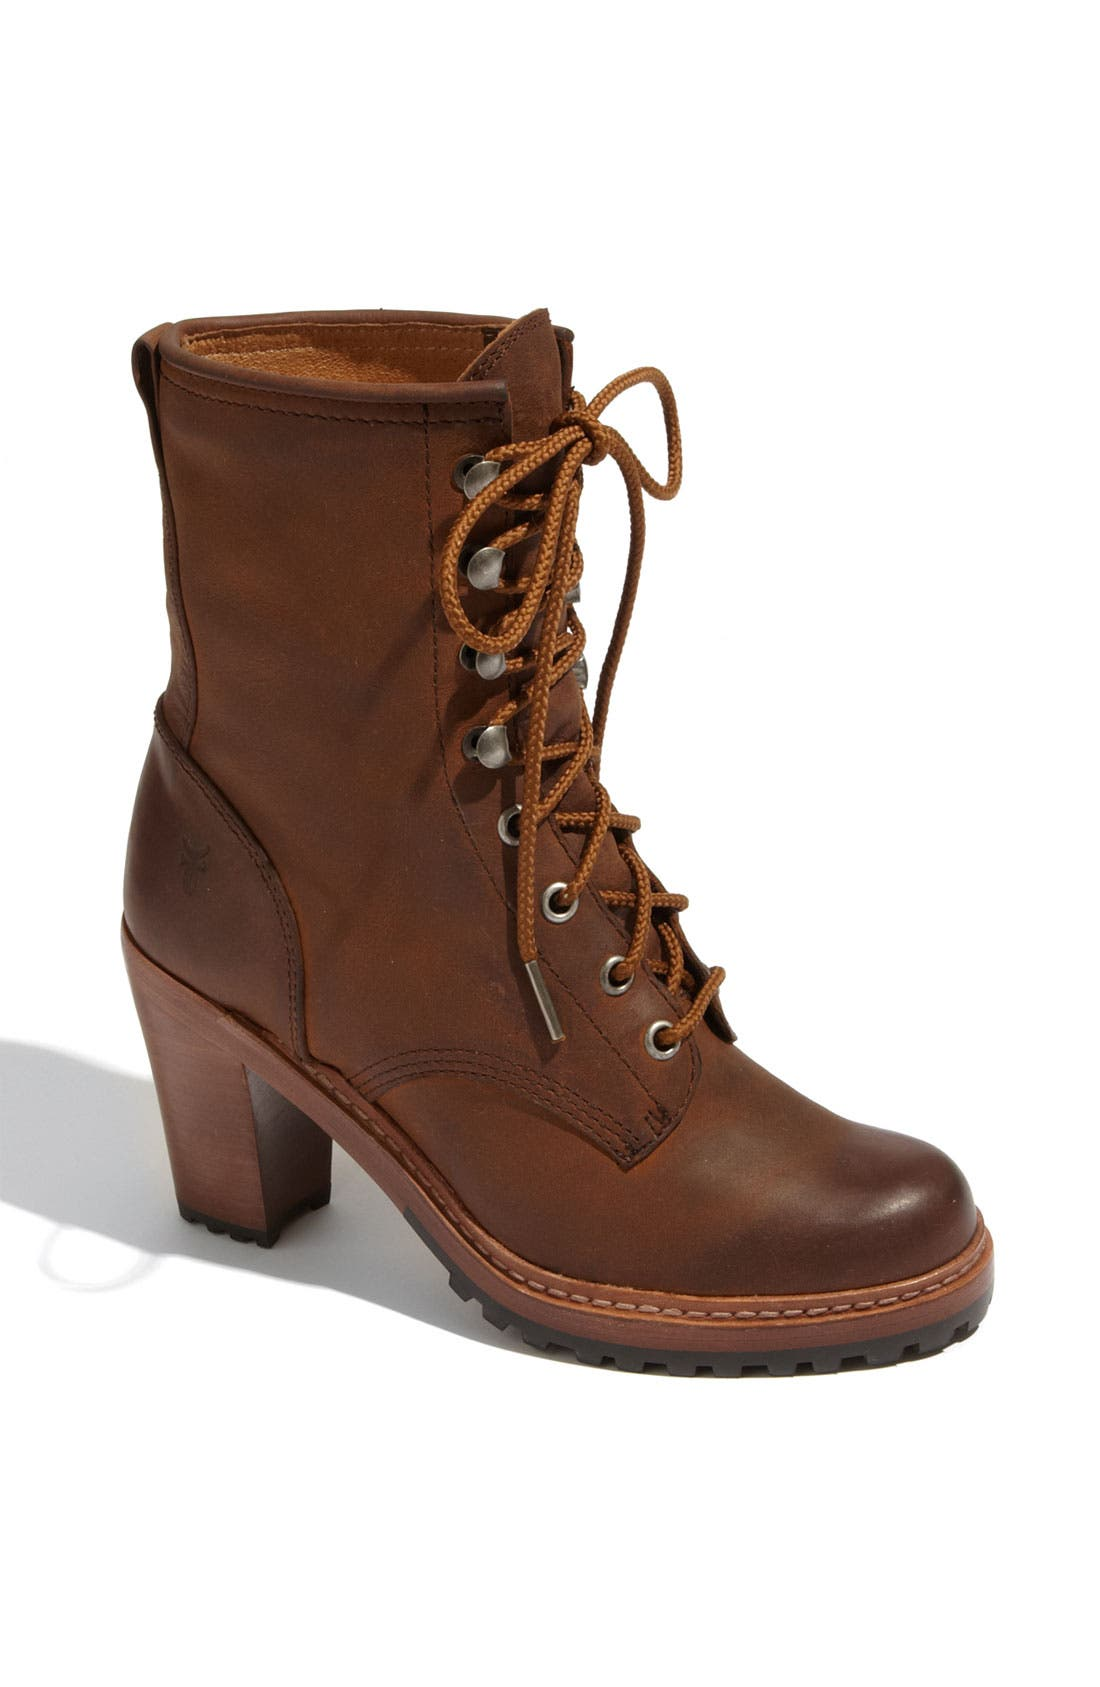 FRYE, 'Lucy' Boot, Main thumbnail 1, color, 231